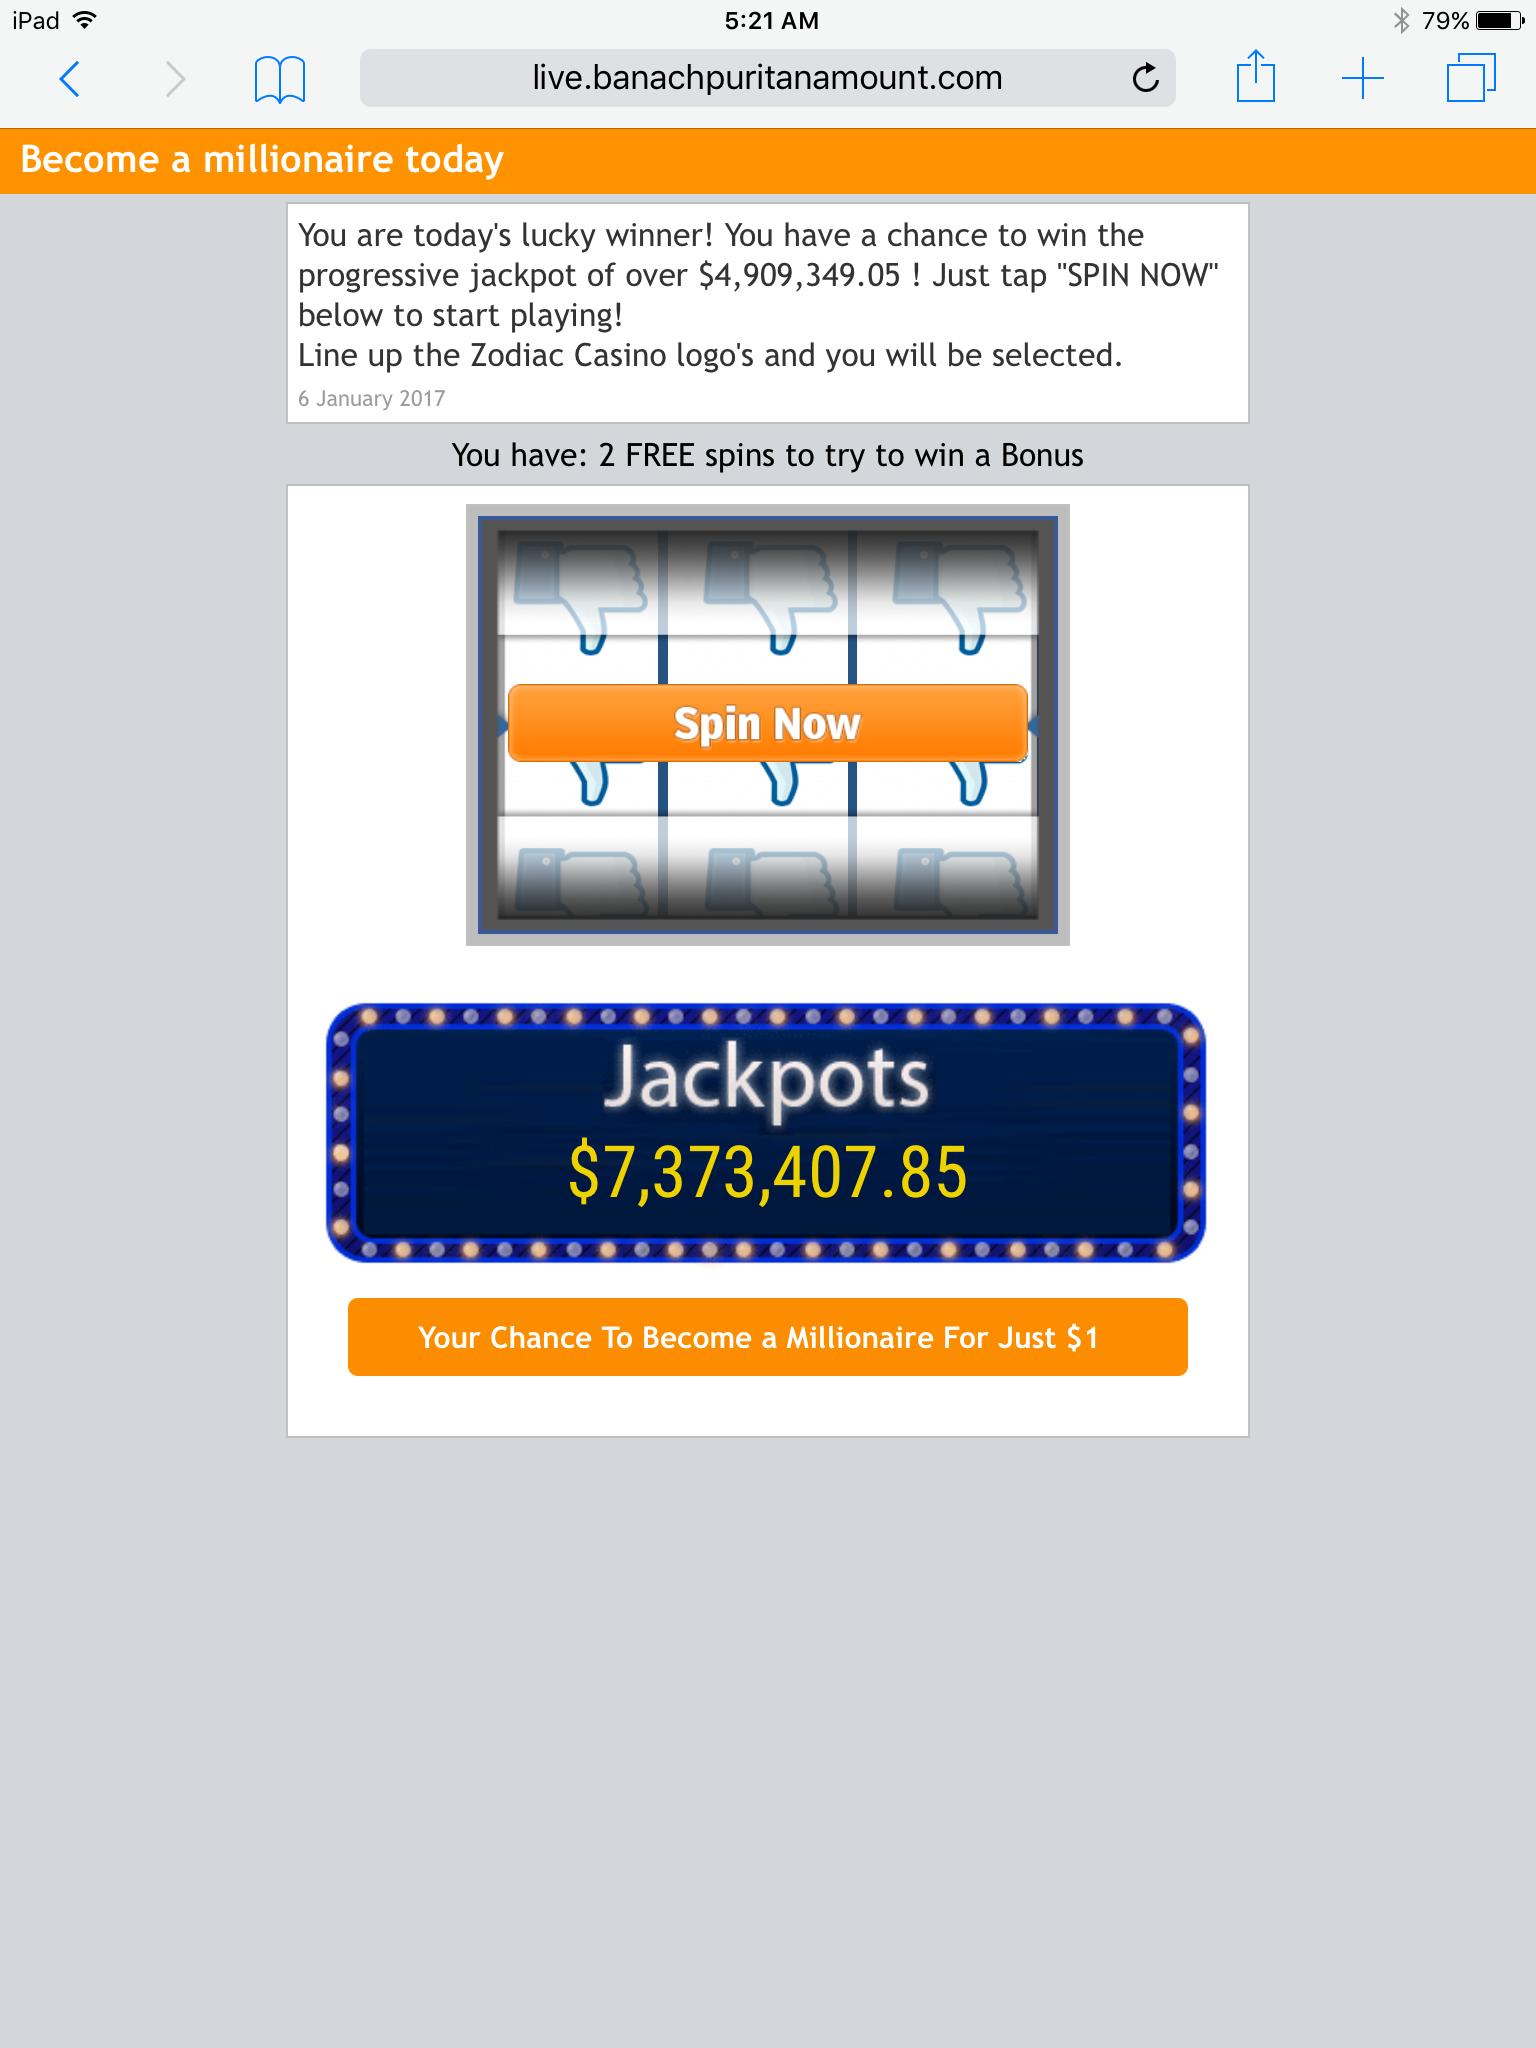 Use of mobile site on CT has popups that hijack browser-img_0645.png